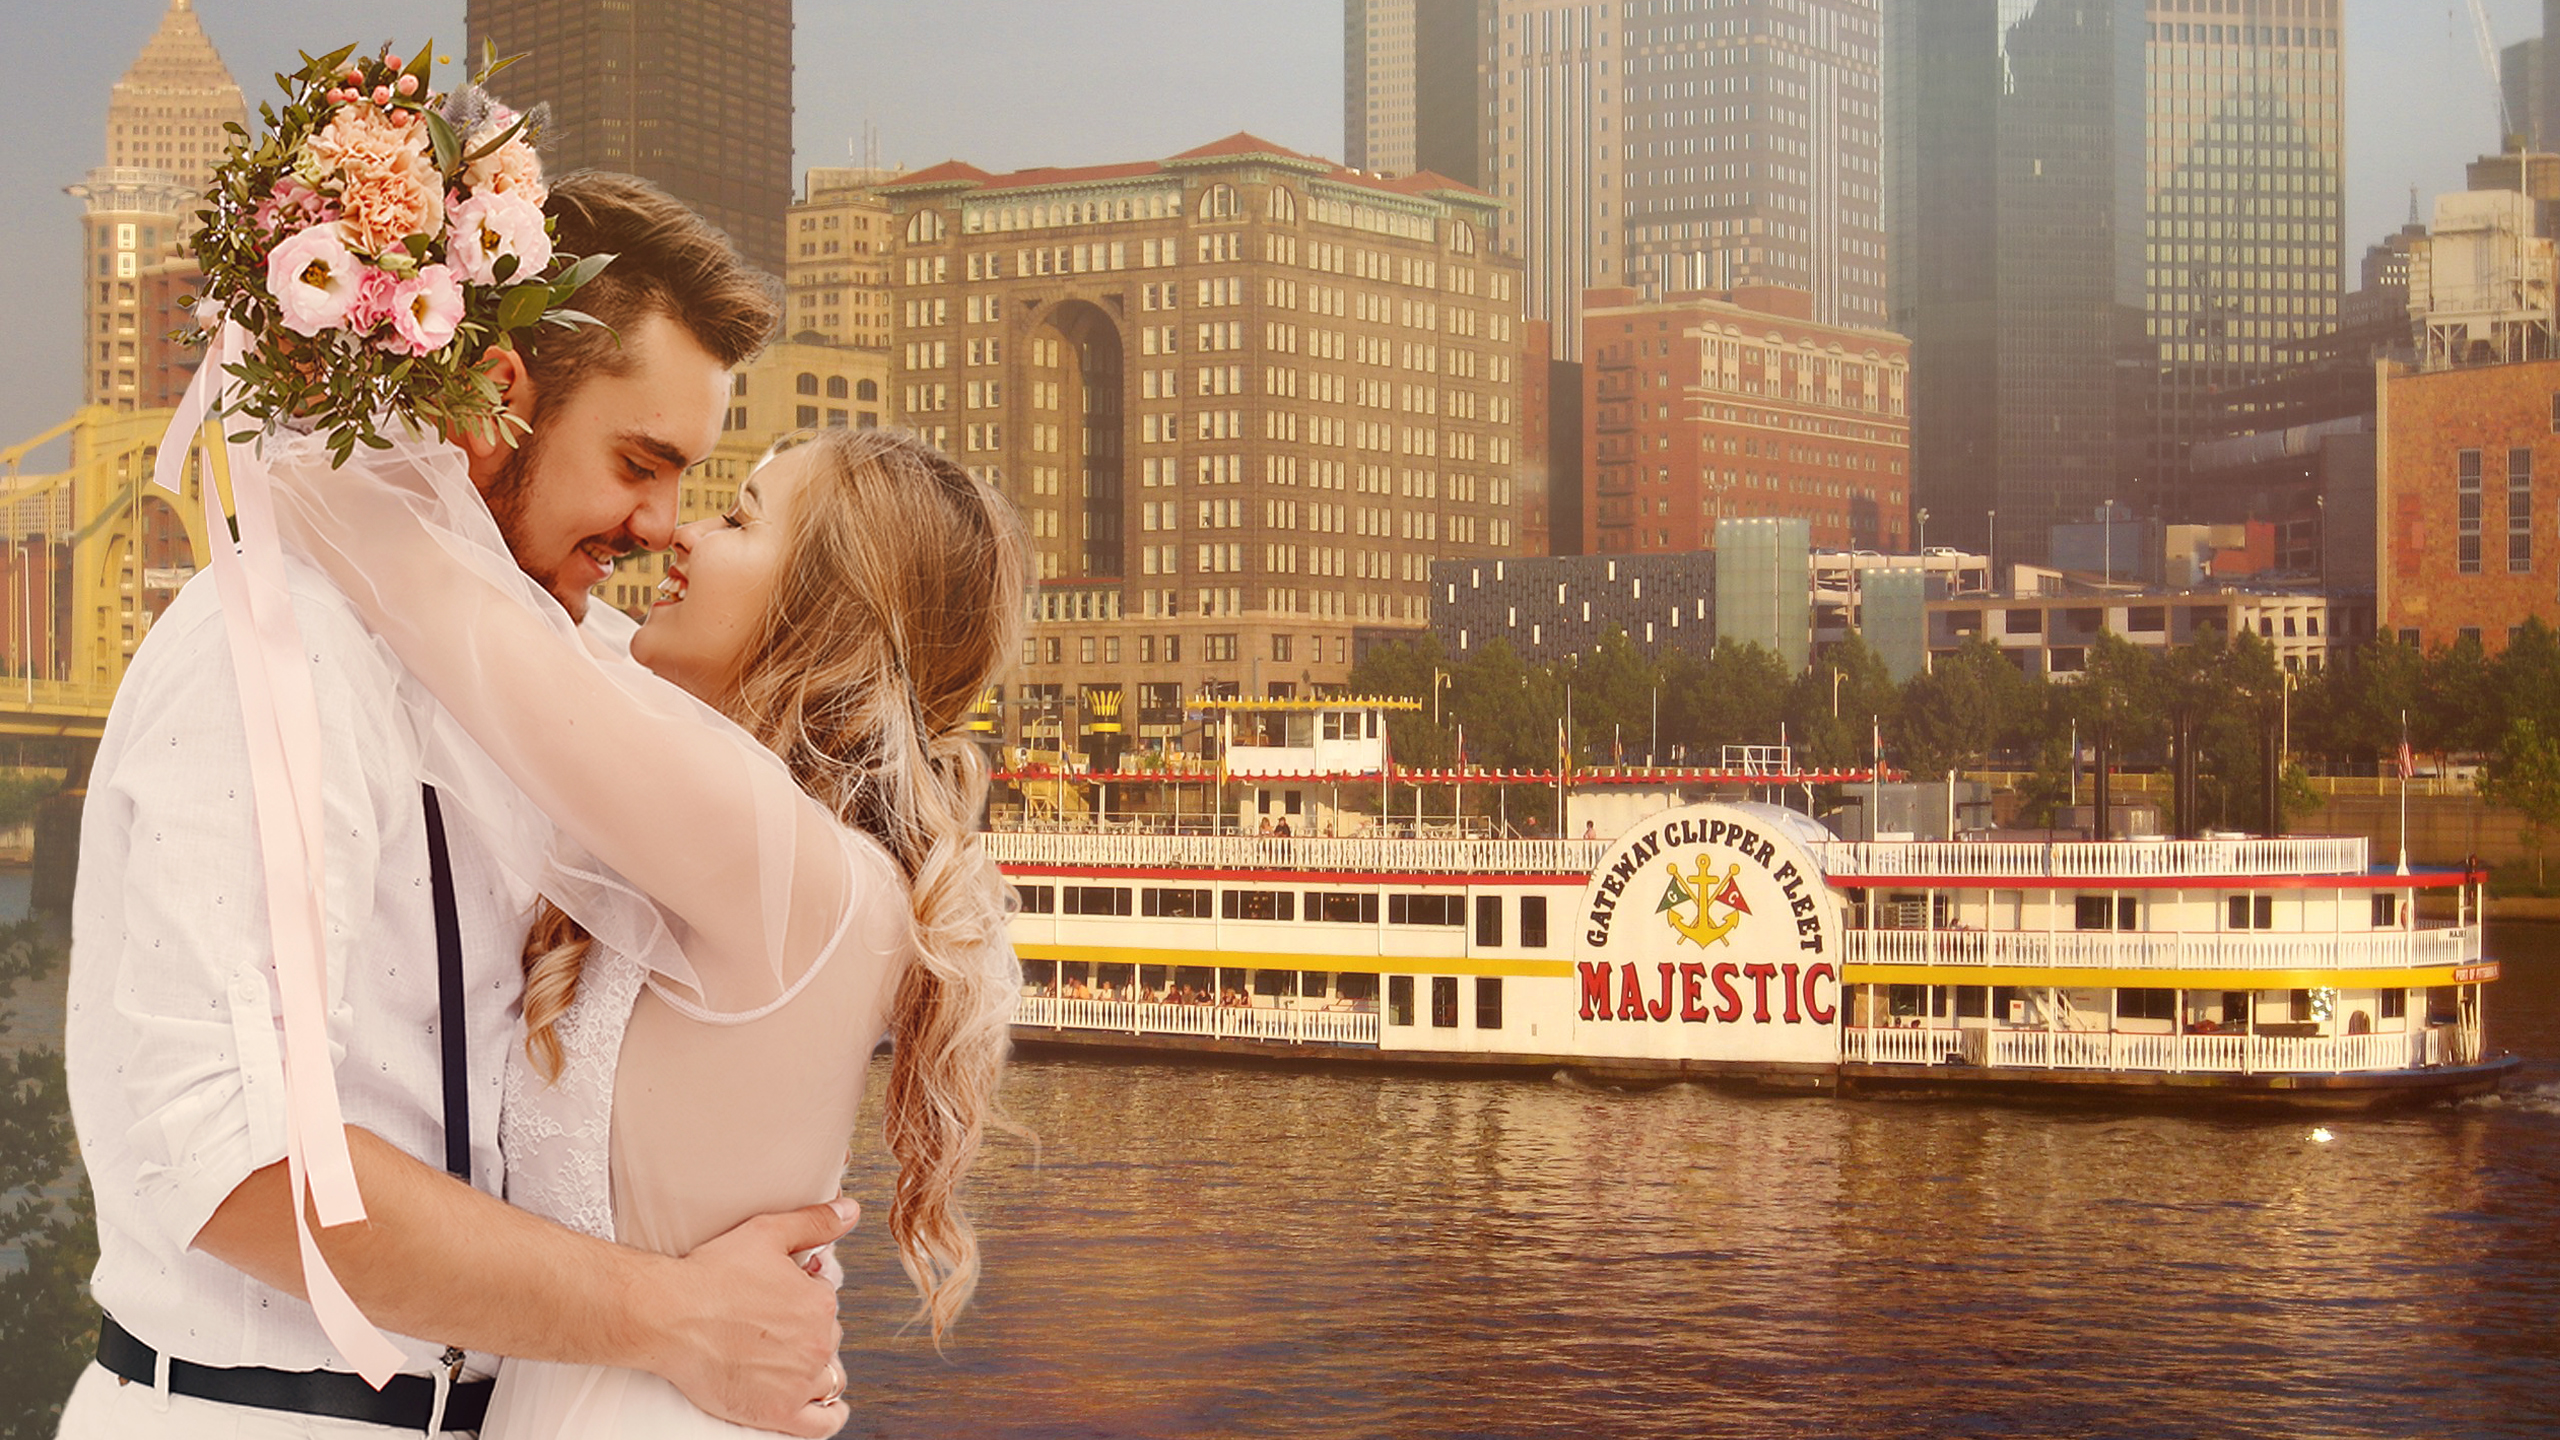 gateway clipper wedding